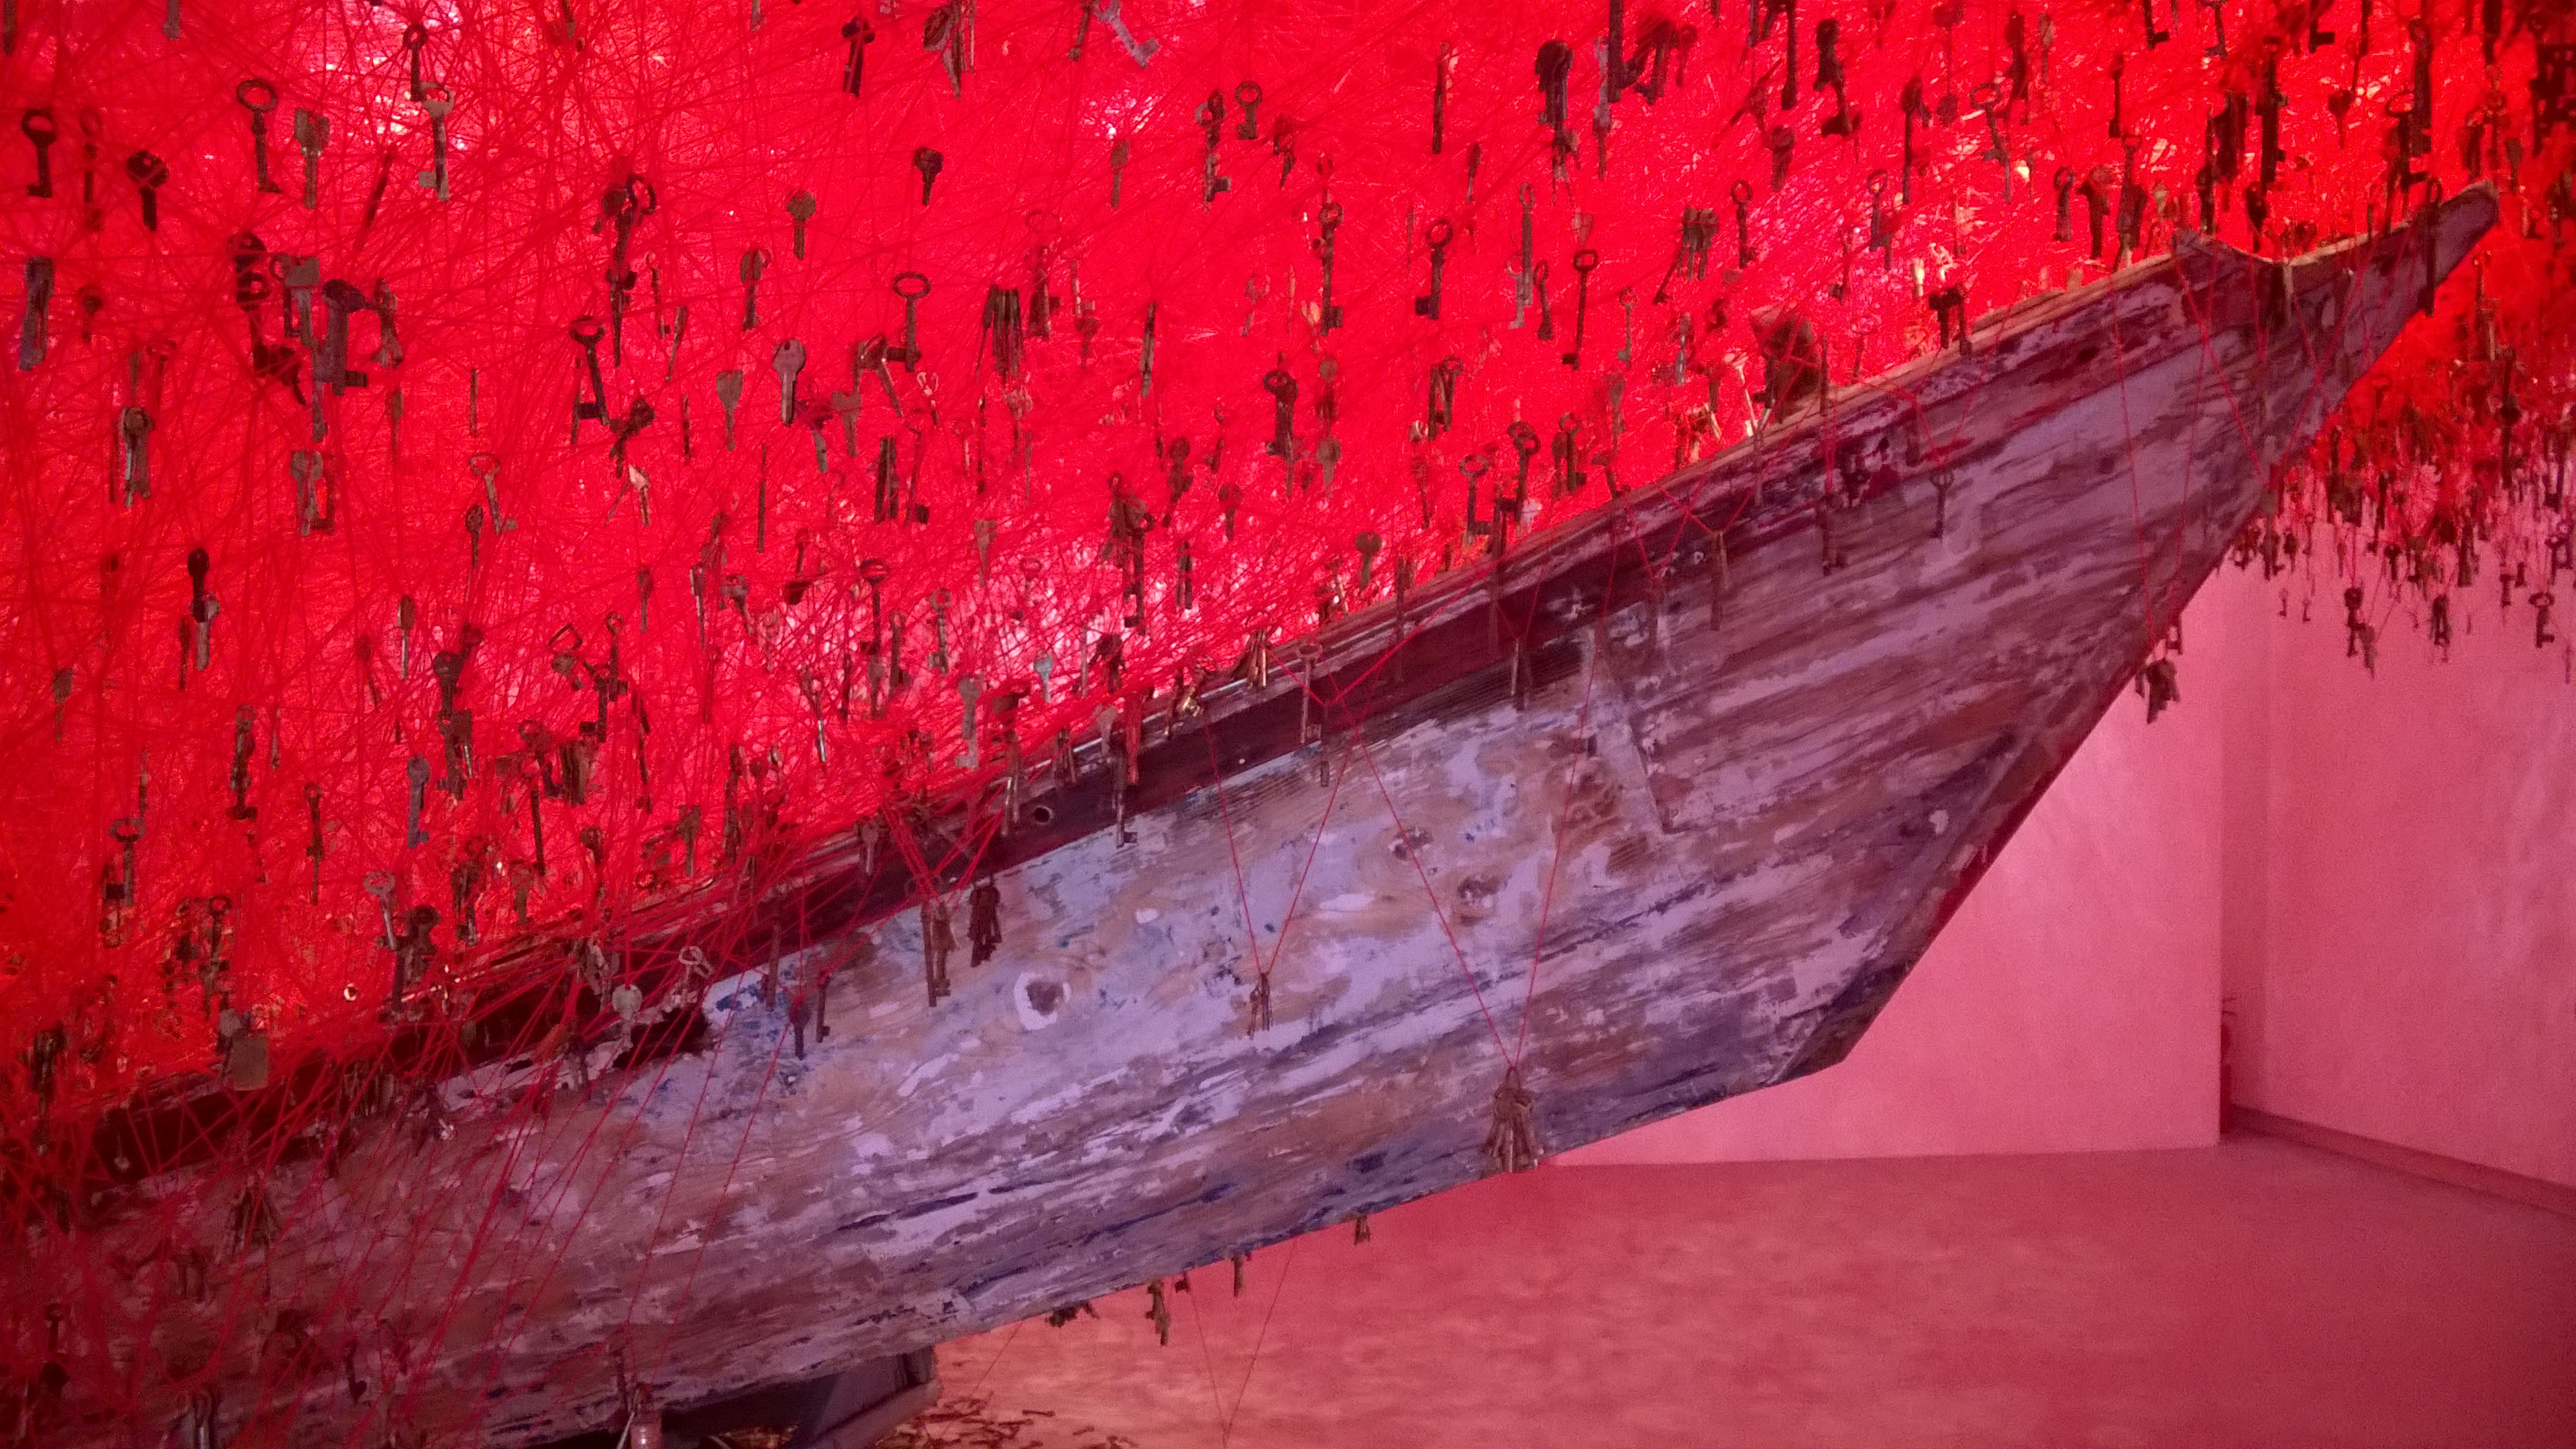 4 The Key in the Hand detail of installation by Chiharu Shiota, Japan Pavilion